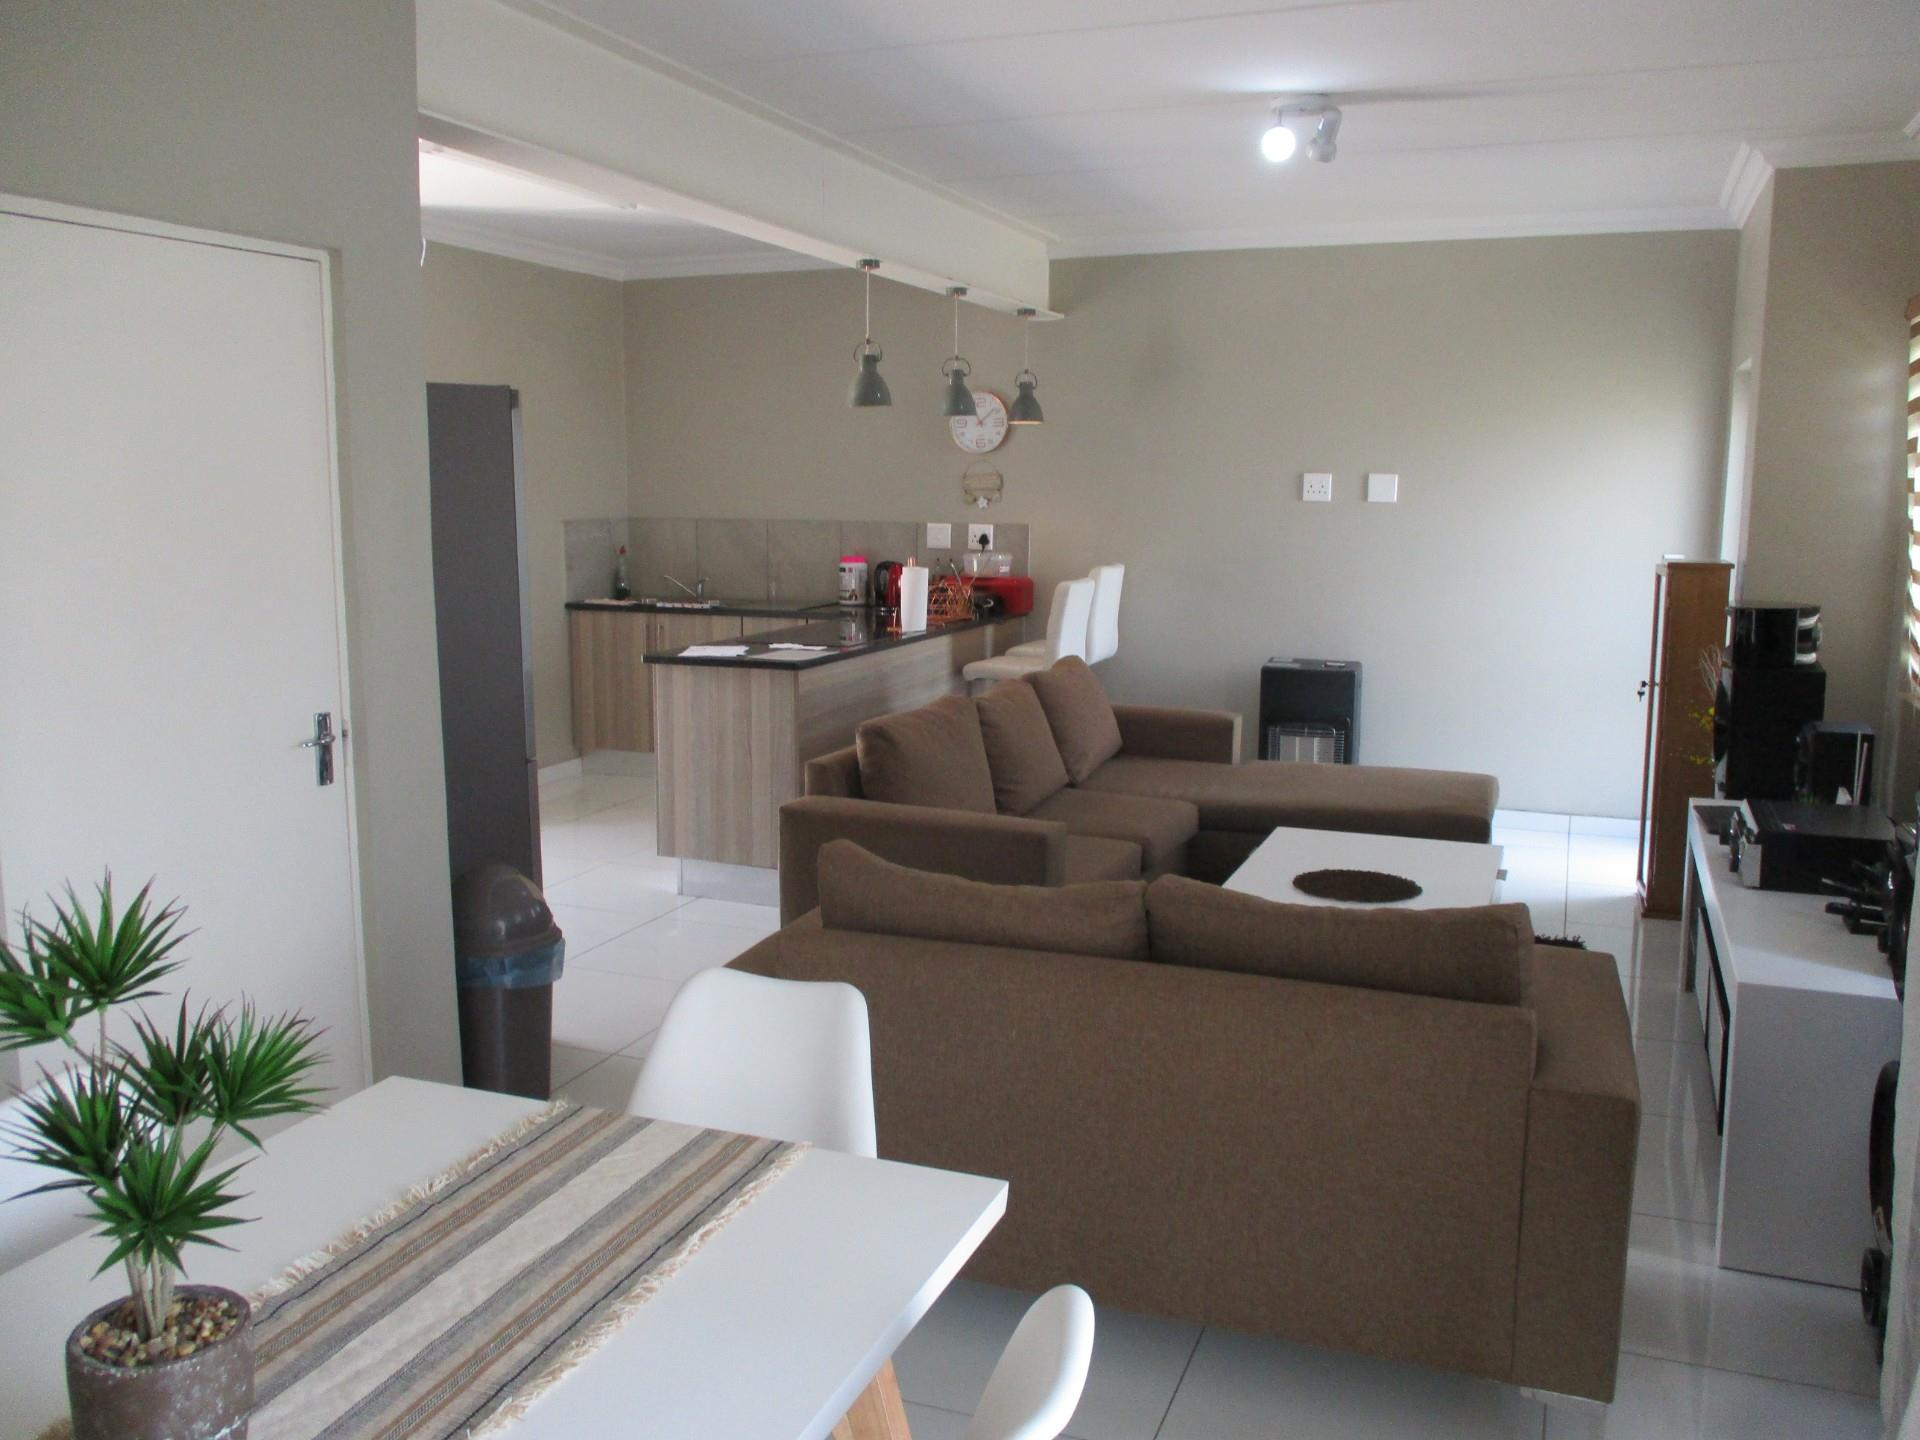 3 Bedroom House For Sale in Albertsdal